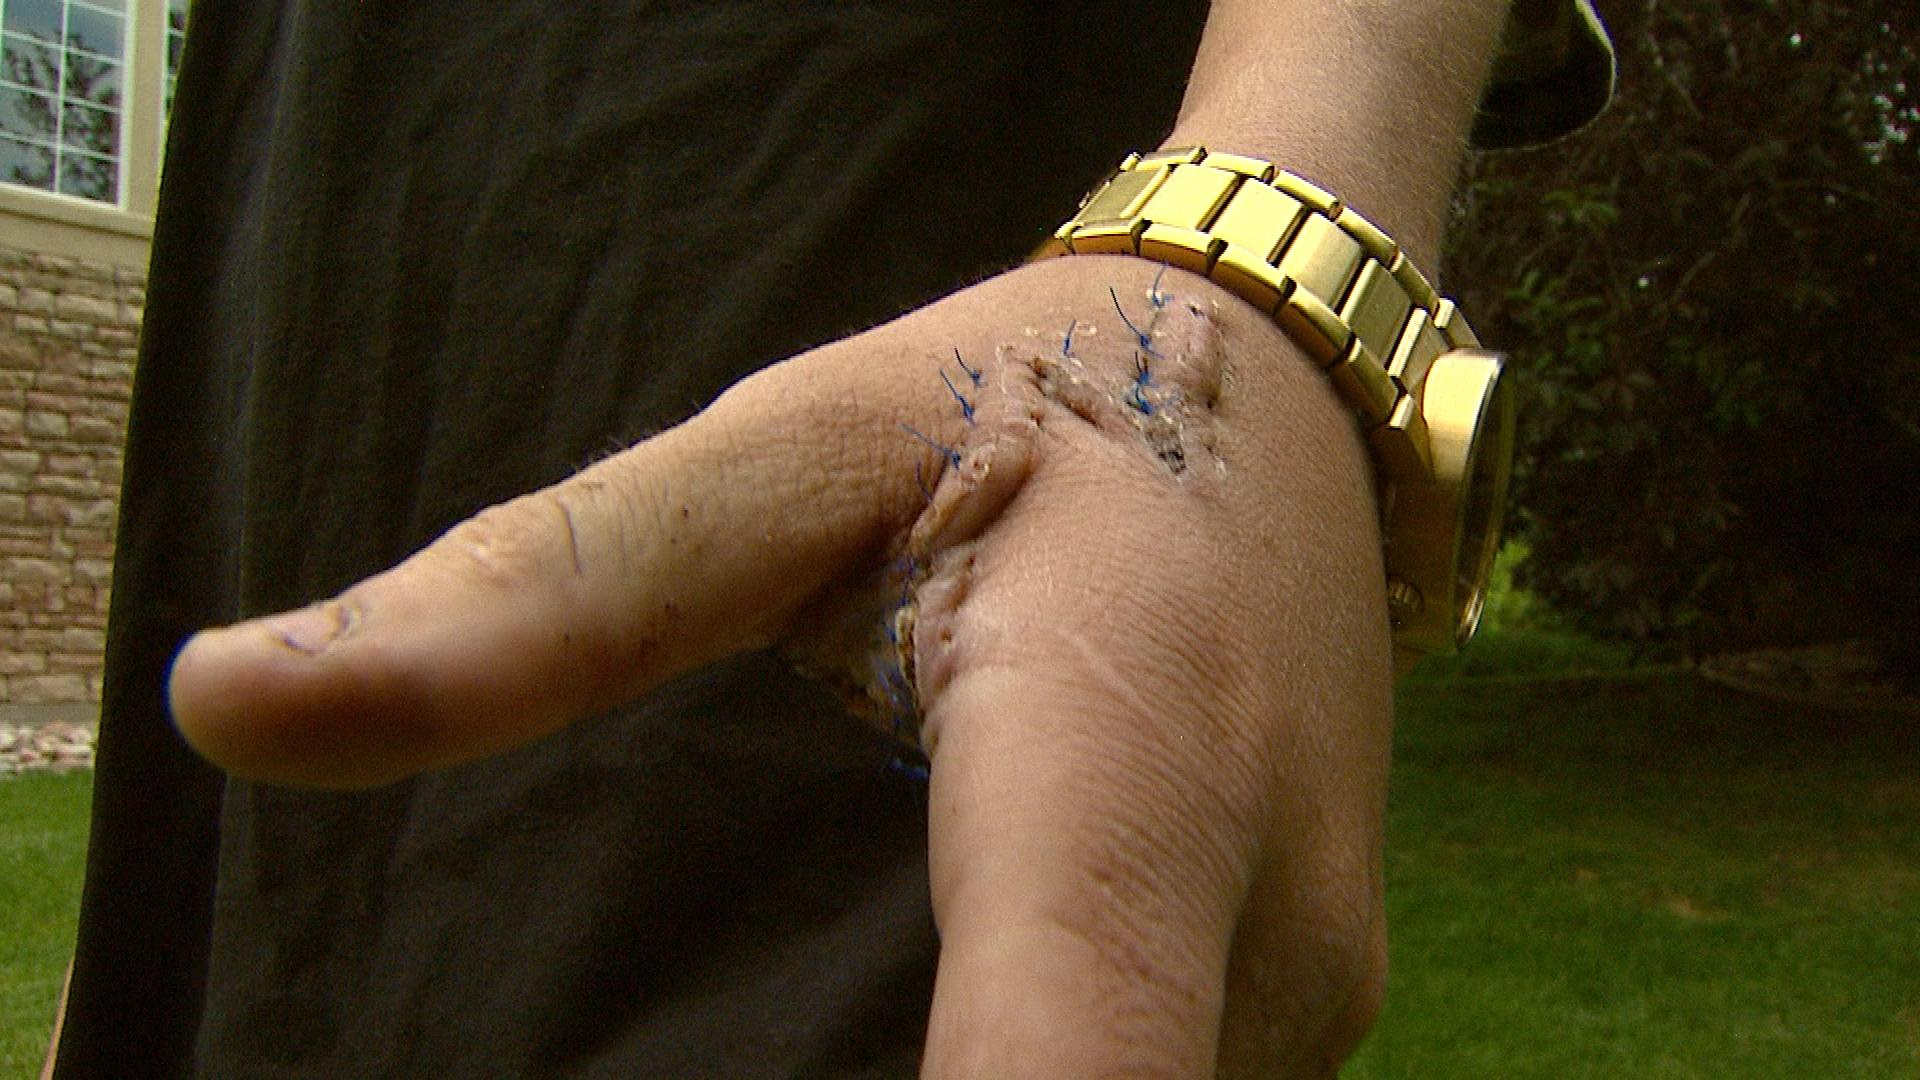 J.J. Jellis shows the wound on his hand from grabbing a machete (credit: CBS)